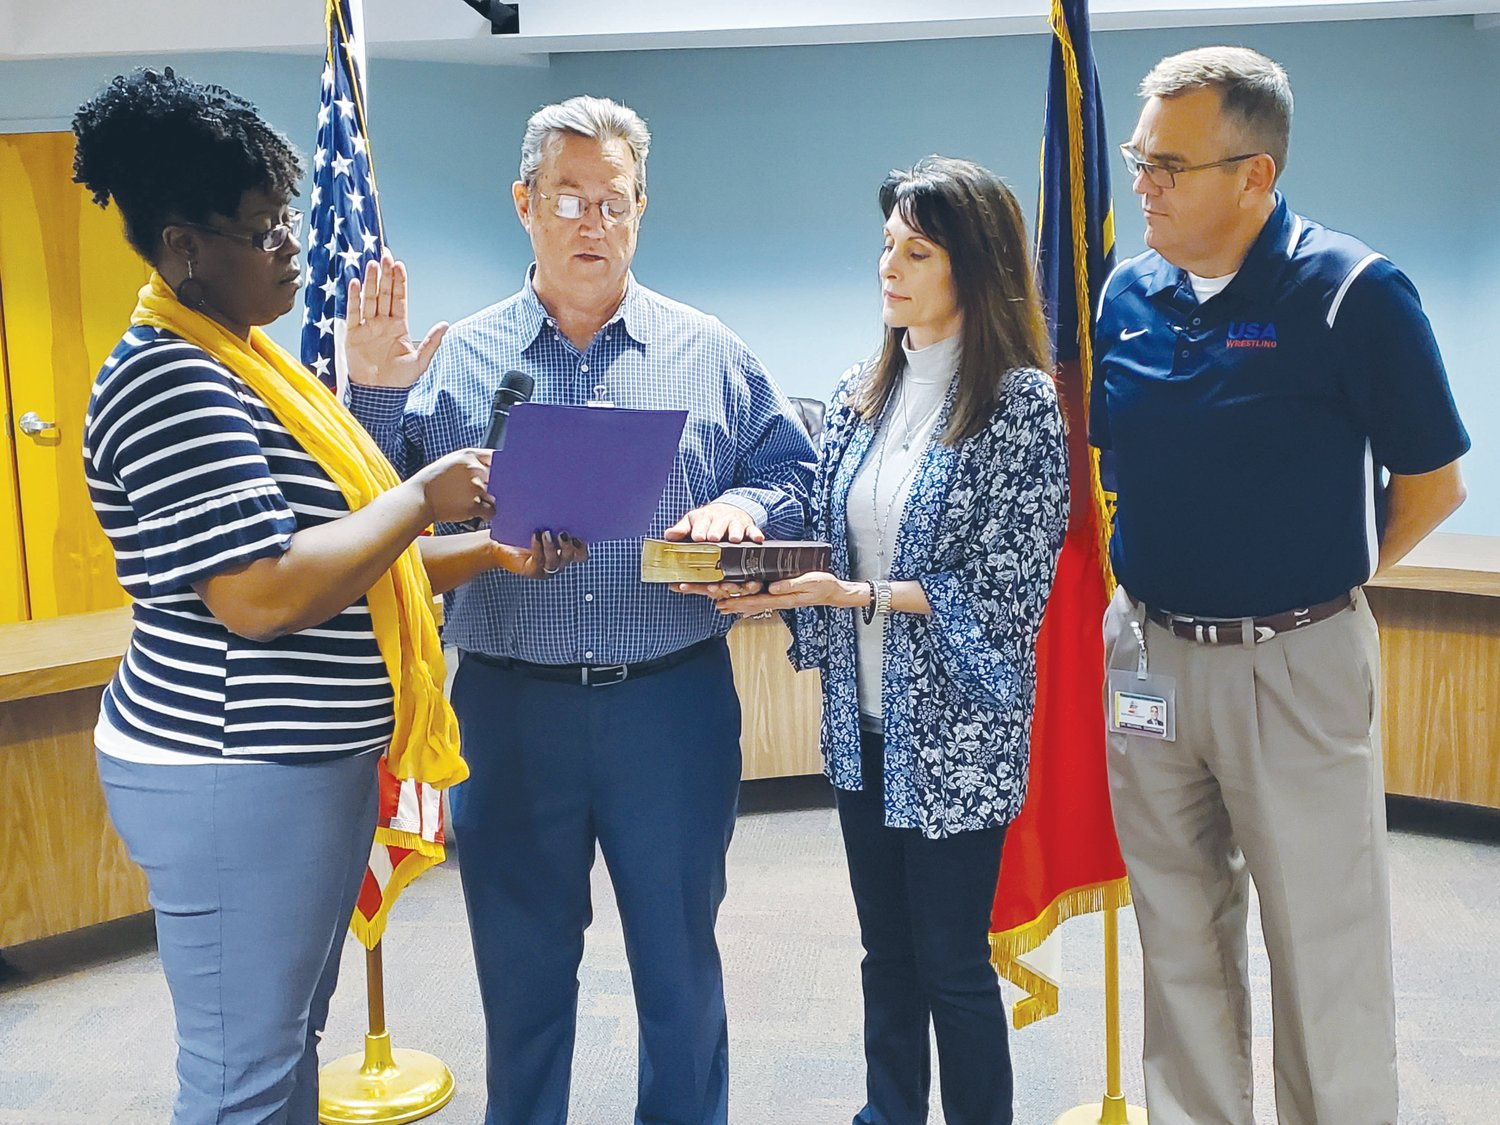 Wade Leatham, second from left, is officially sworn in as the new District 6 representative on the Wayne County Board of Education. With Leatham are BOE Assistant and Notary Public Trish Lateisha Williams, wife Sheila Leatham and Dr. Michael Dunsmore, superintendent of Wayne County Public Schools.